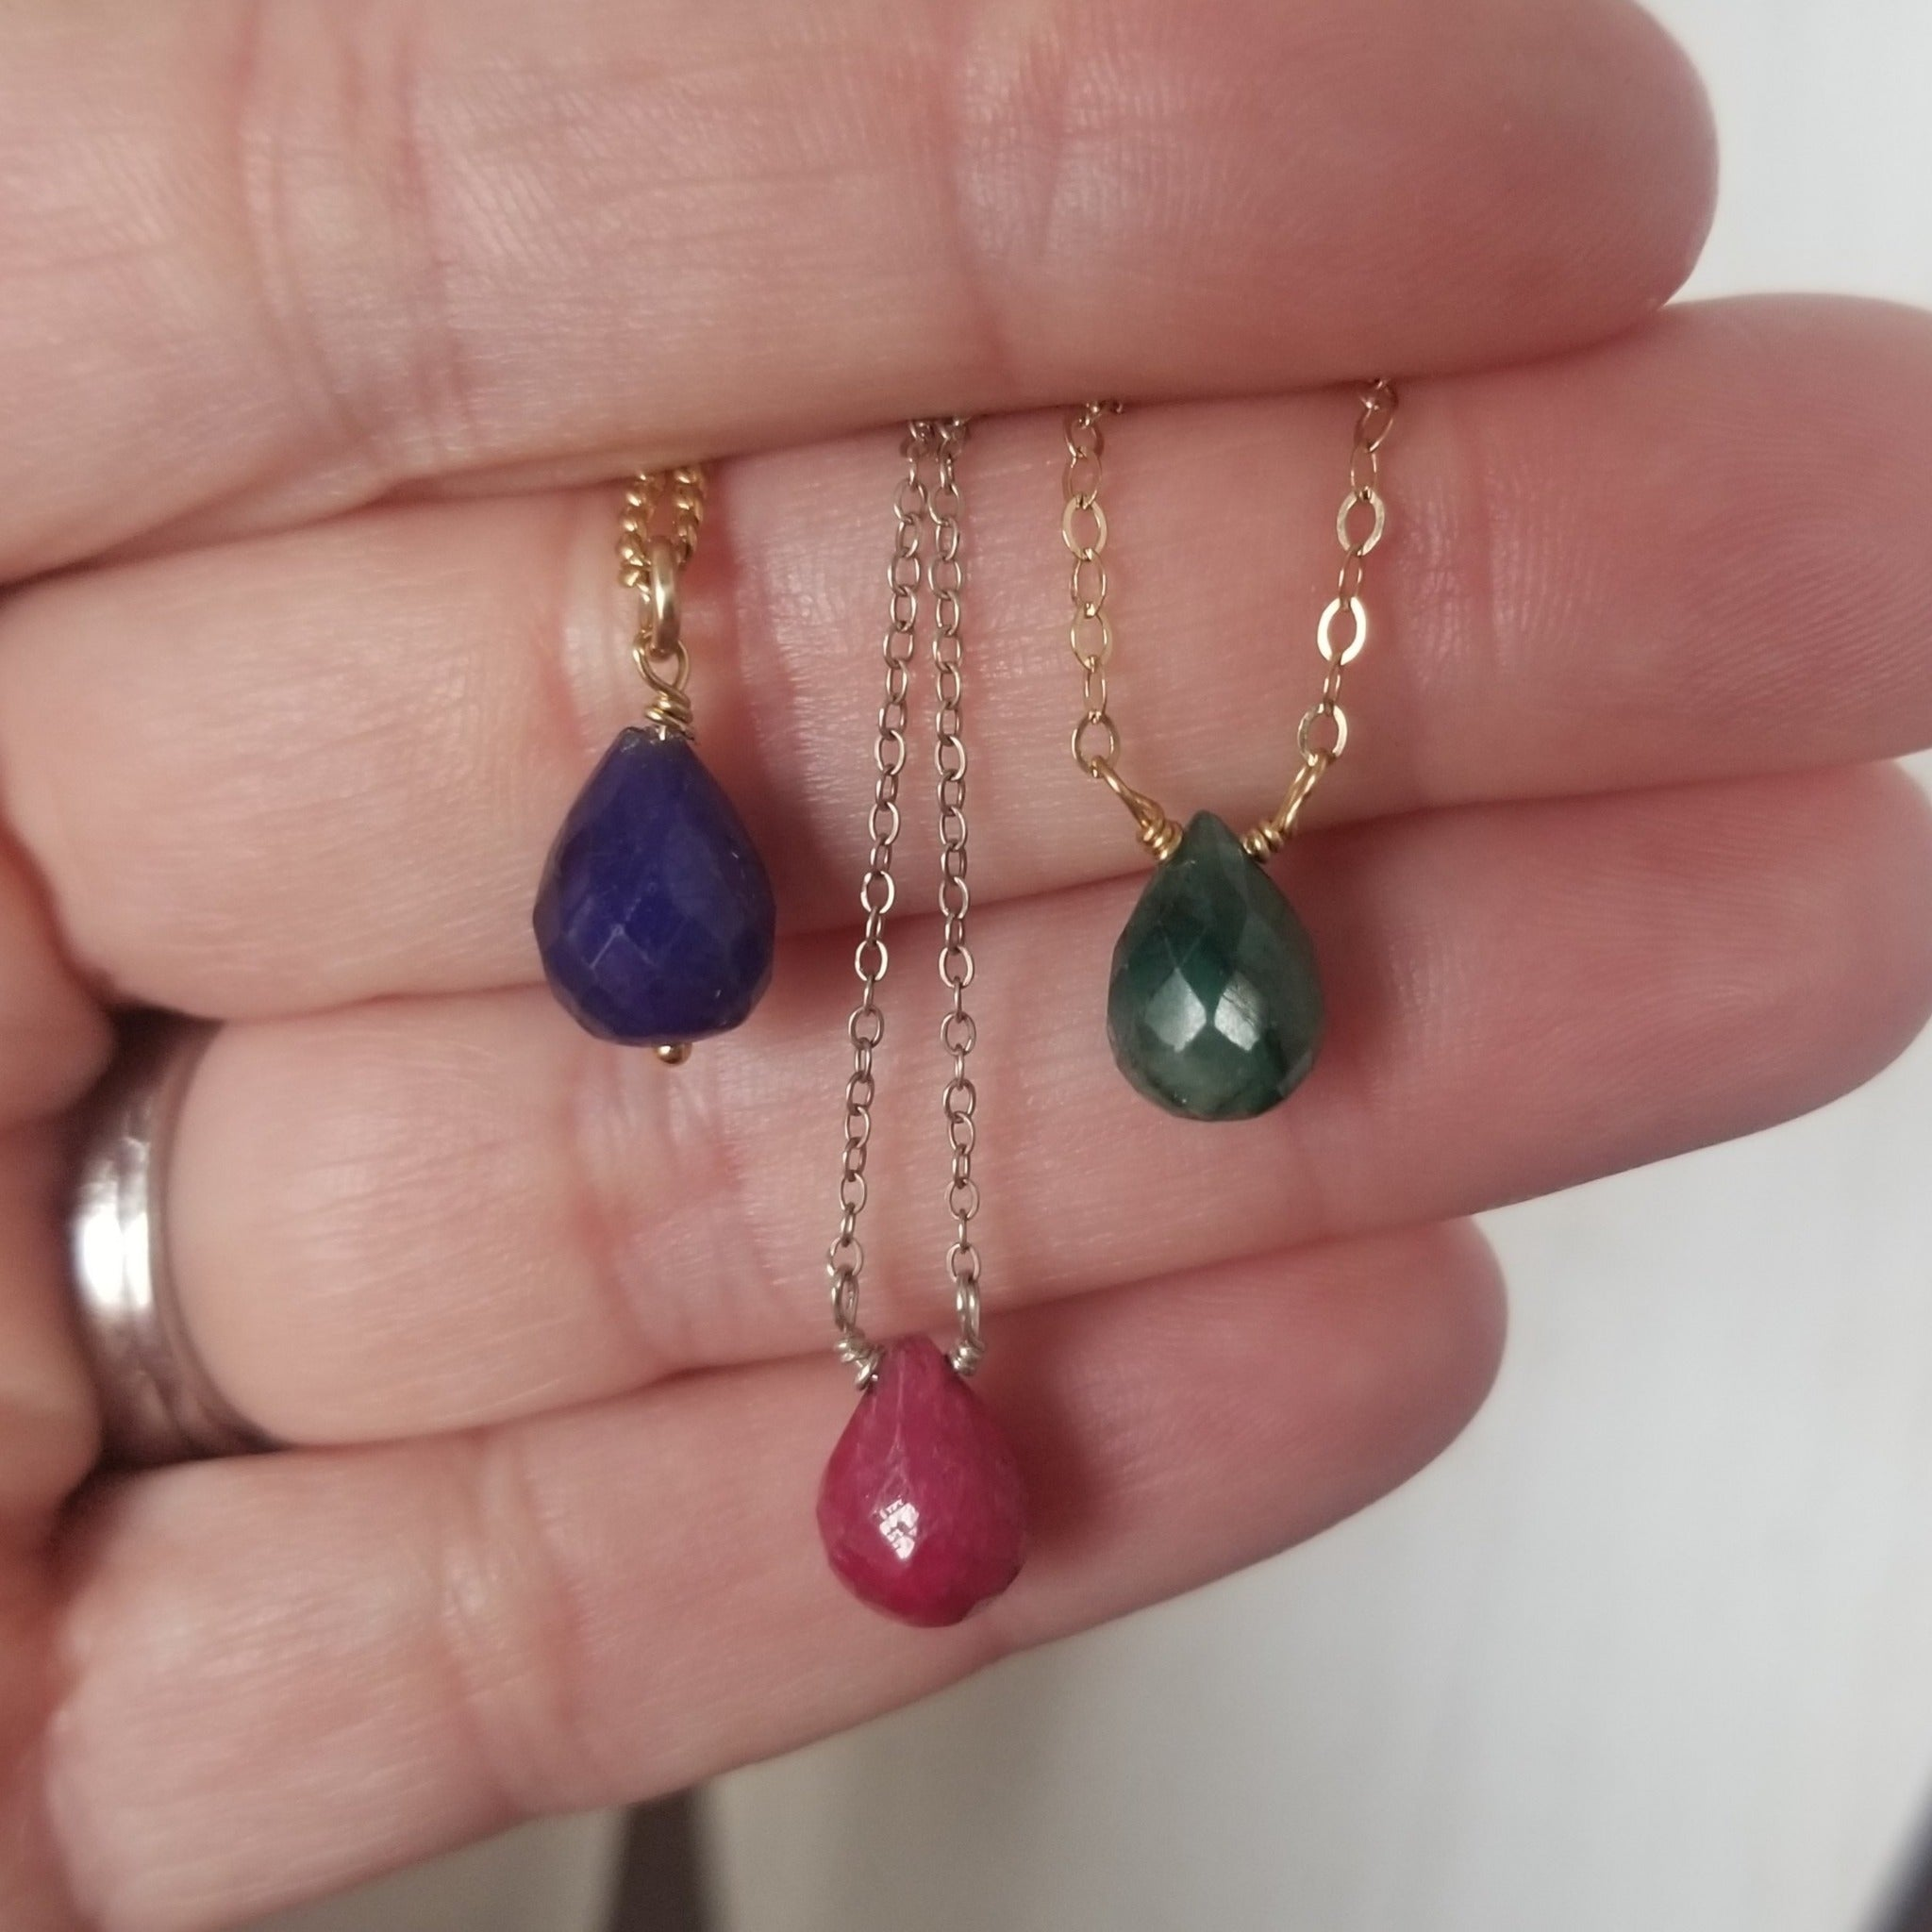 Ruby, Sapphire or Emerald Crystal Birthstone Necklace - Sterling or Gold